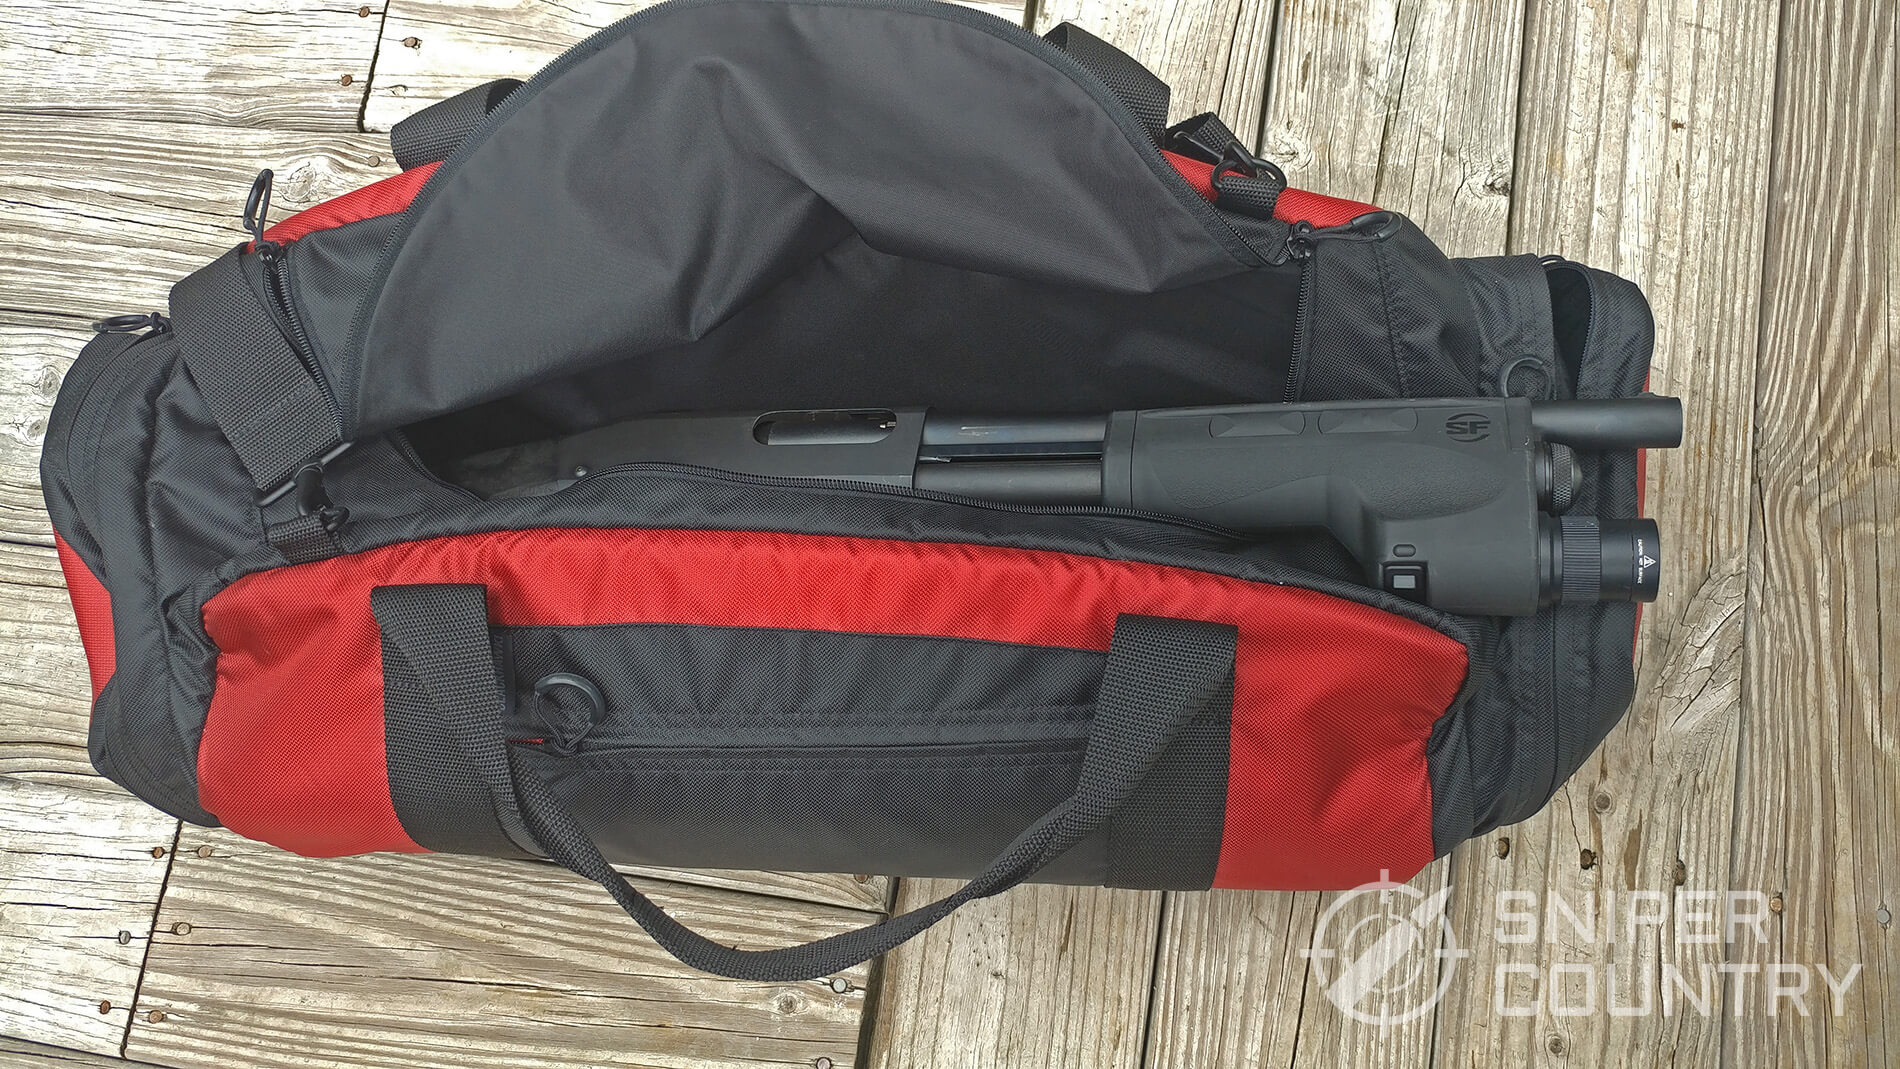 Blackhawk CCW Bag top